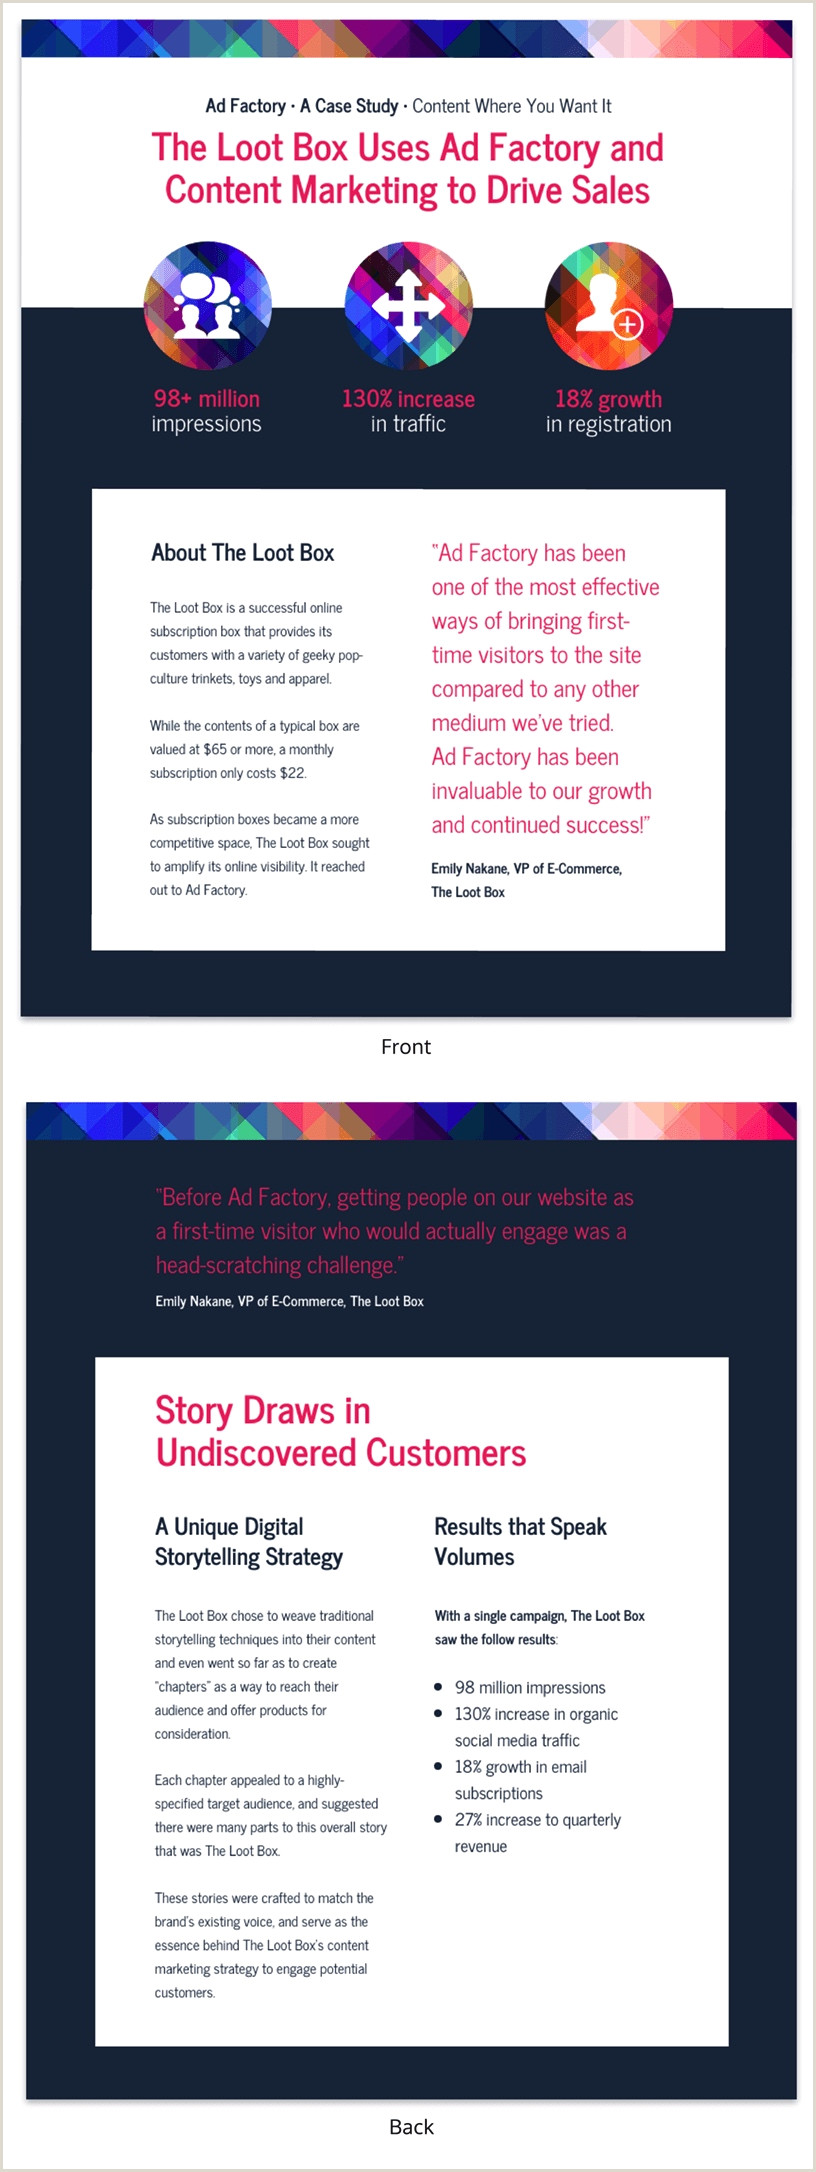 Best Business Cards 2020 Healthcarr 19 Consulting Report Templates That Every Consultant Needs